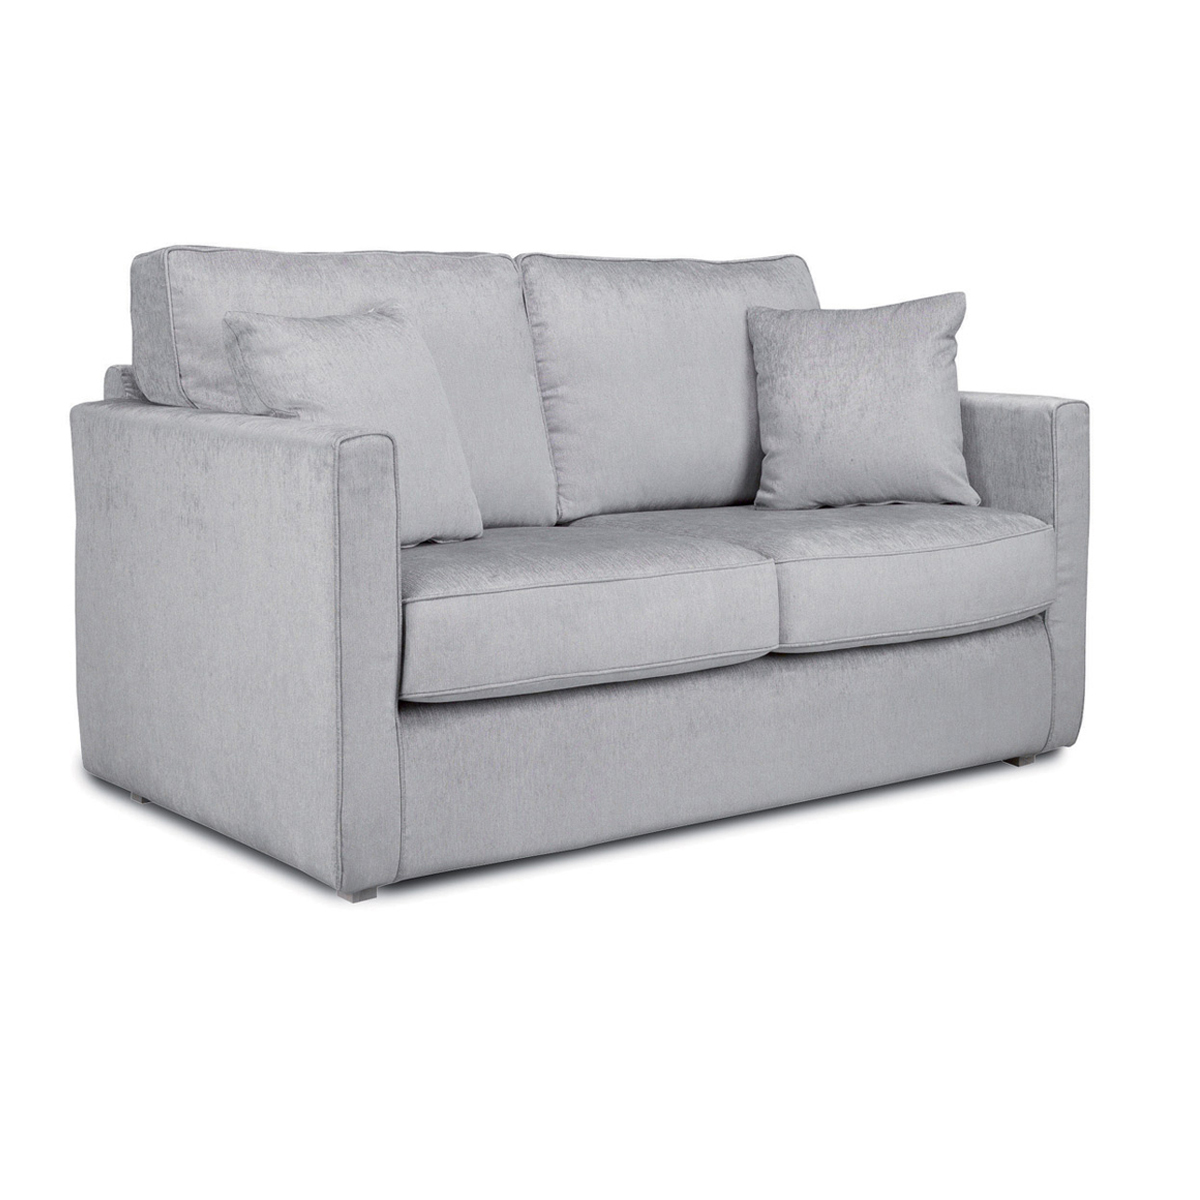 Canap convertible 75011 royal sofa id e de canap et for Bon canape convertible